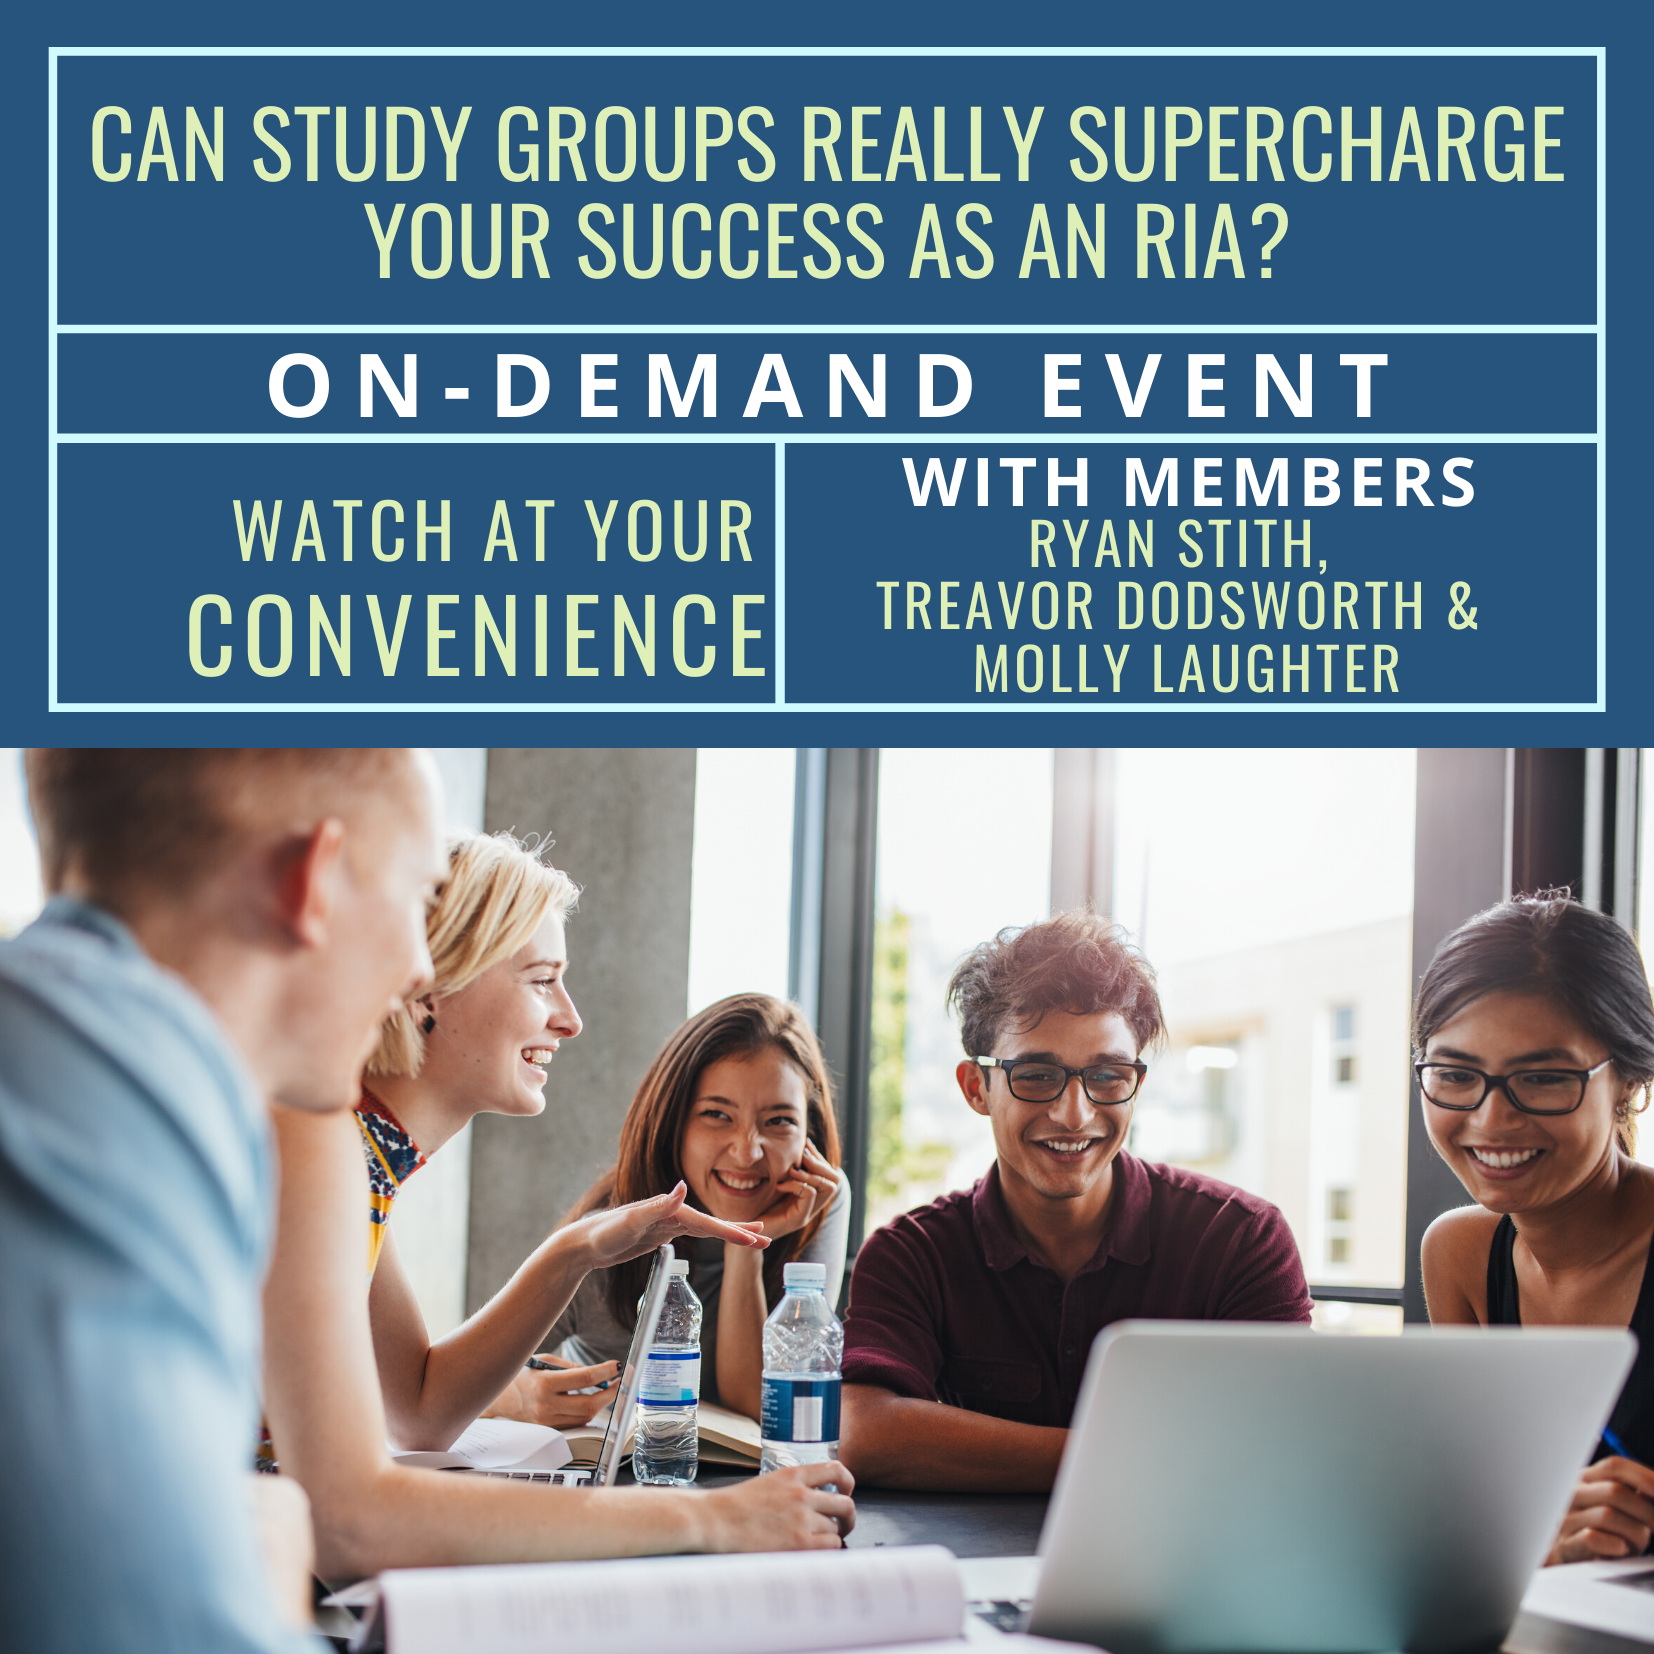 On-Demand Event: Can Study Groups Really Supercharge Your Success as an RIA?